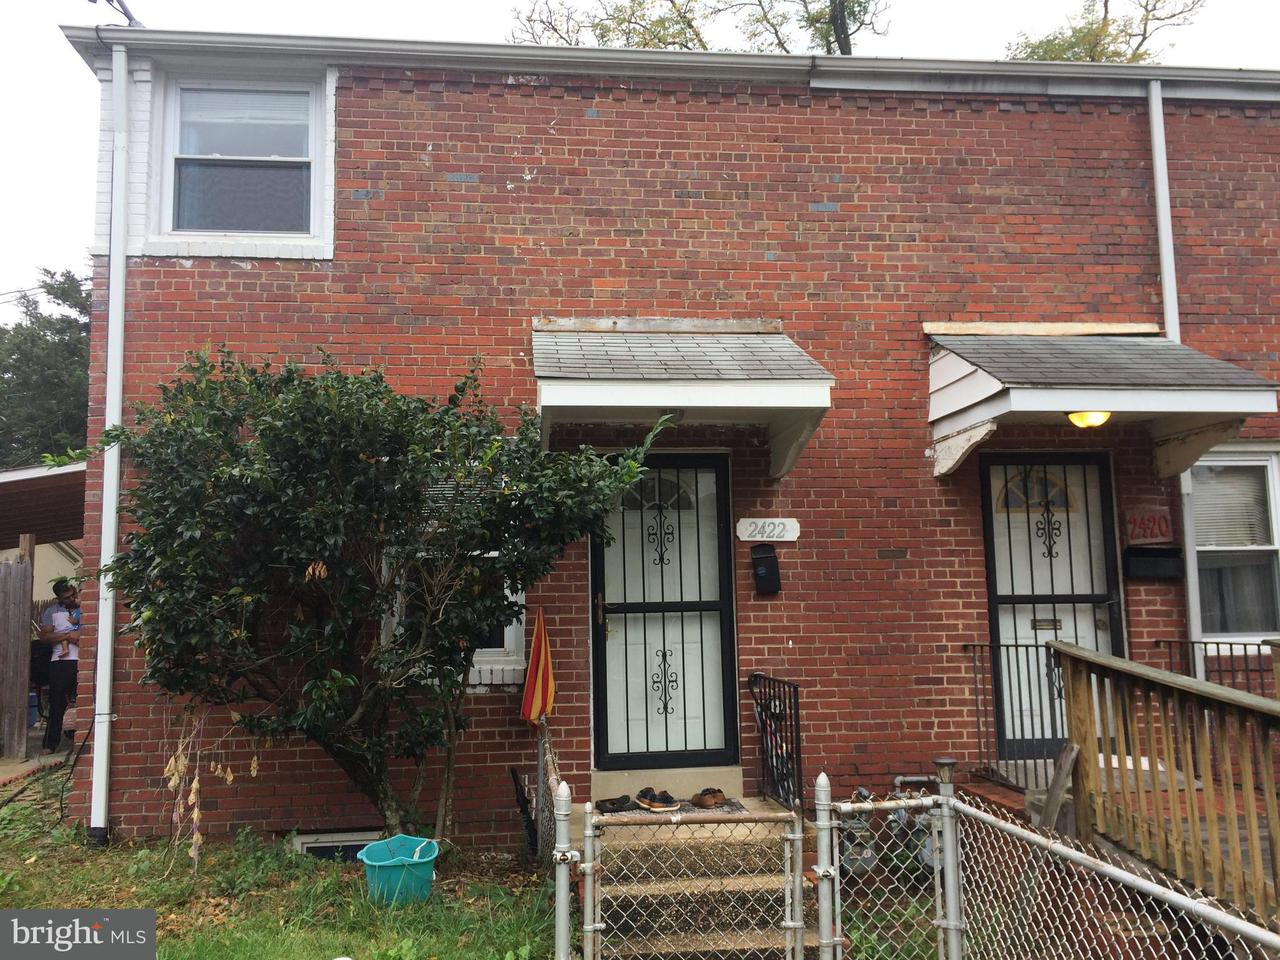 Duplex for Sale at 2422 Oakland St S 2422 Oakland St S Arlington, Virginia 22206 United States